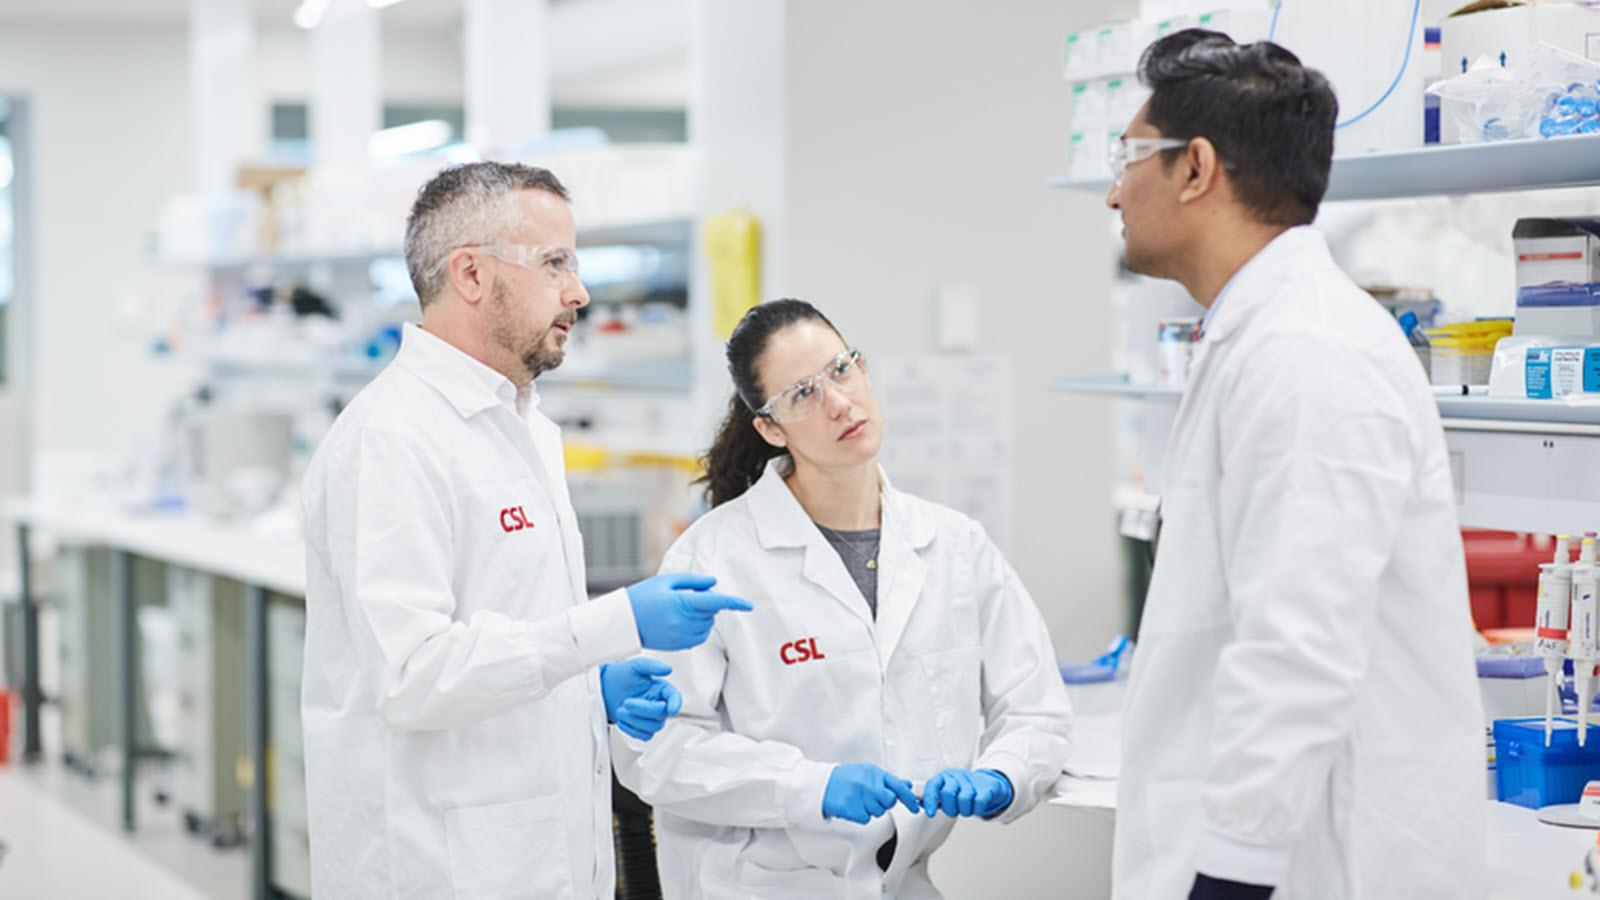 Two male and one female scientist talk in a lab environment